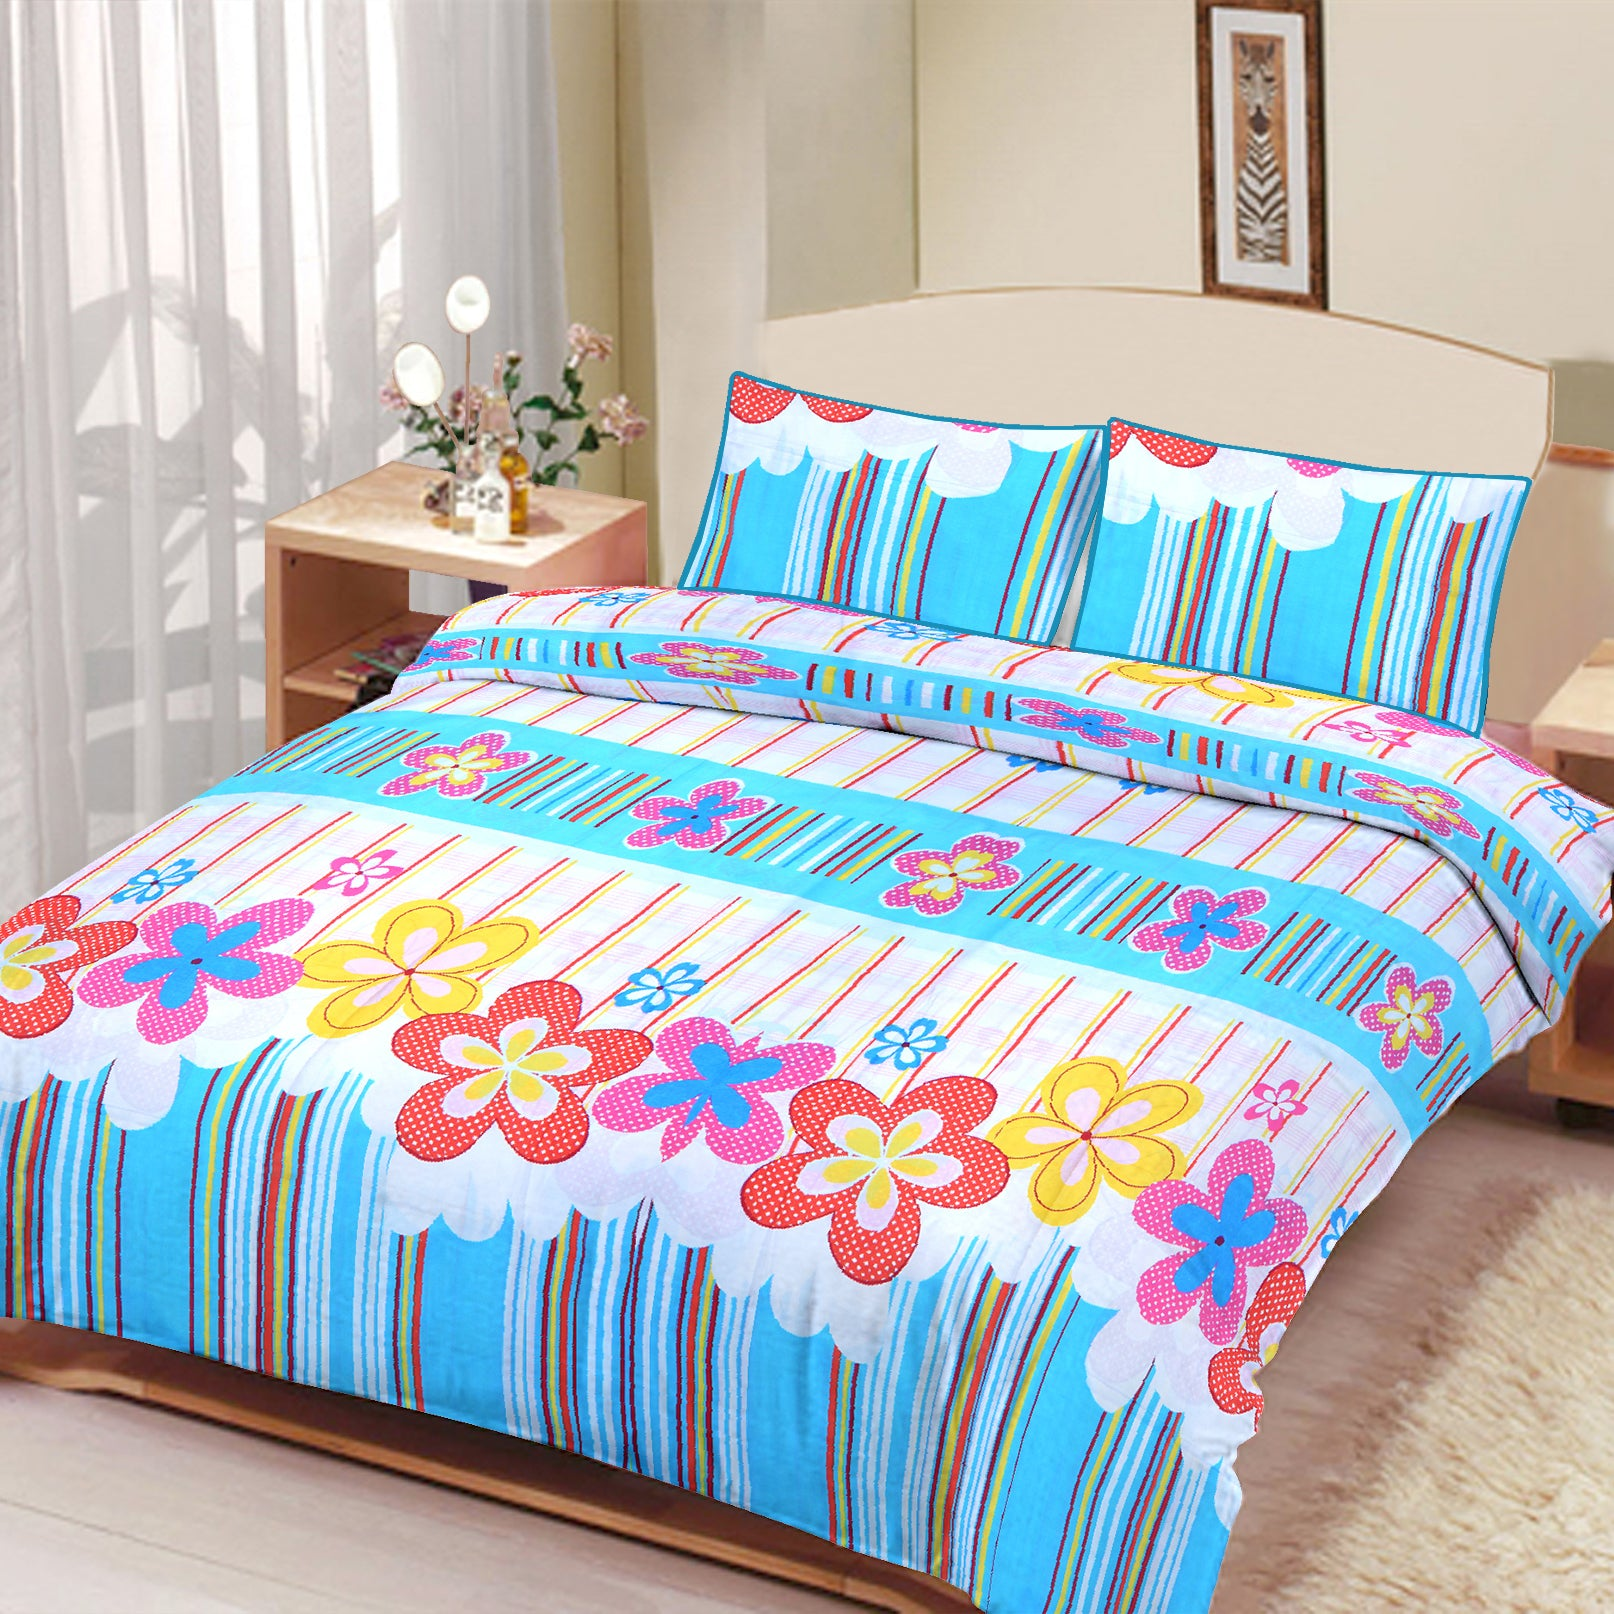 Okeru0027s Island 100% Cotton Printed Double Bed Sheet U0026 Pillow Set BE5693